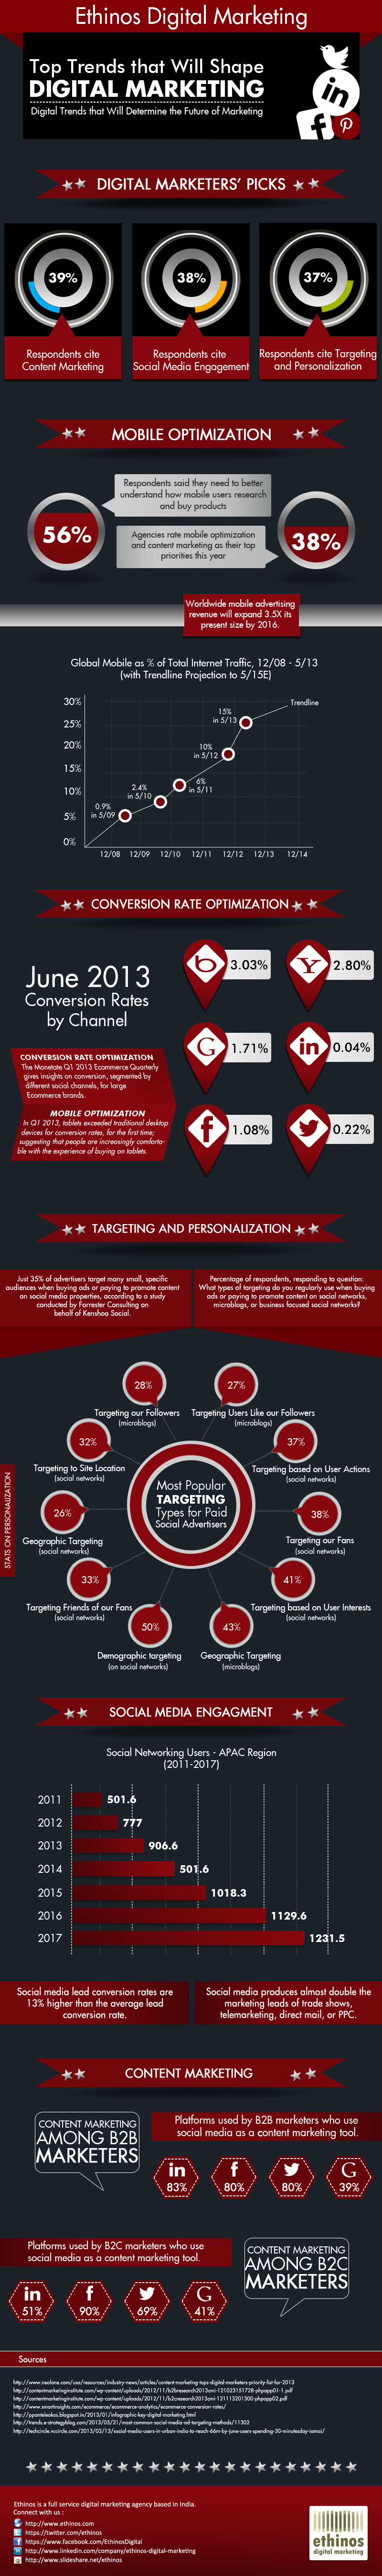 infographic-on-the-top-trends-that-will-shape-digital-marketing_52610c97f0bdb